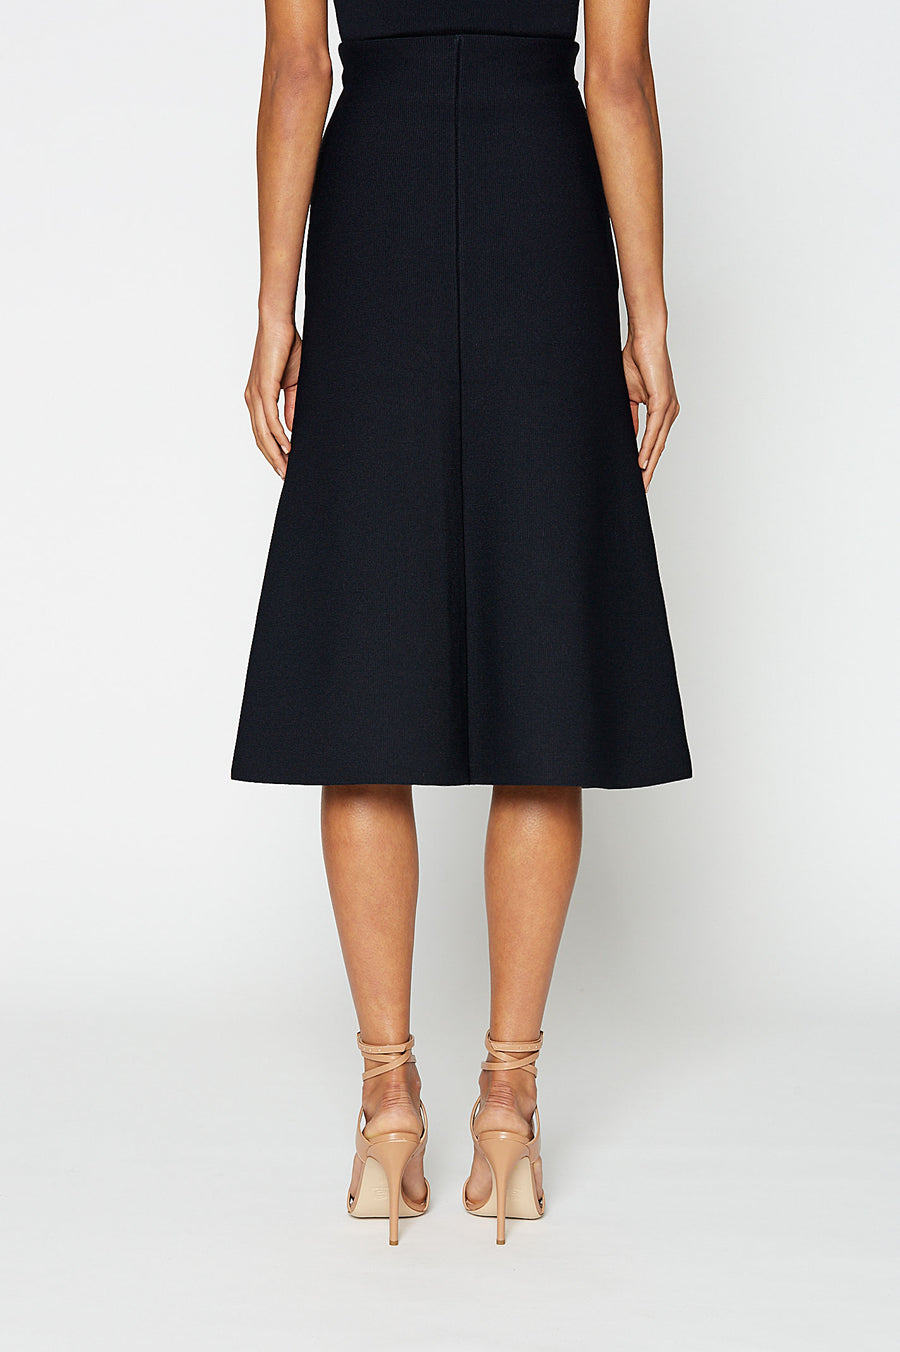 CREPE KNIT A-LINE SKIRT, NAVY color